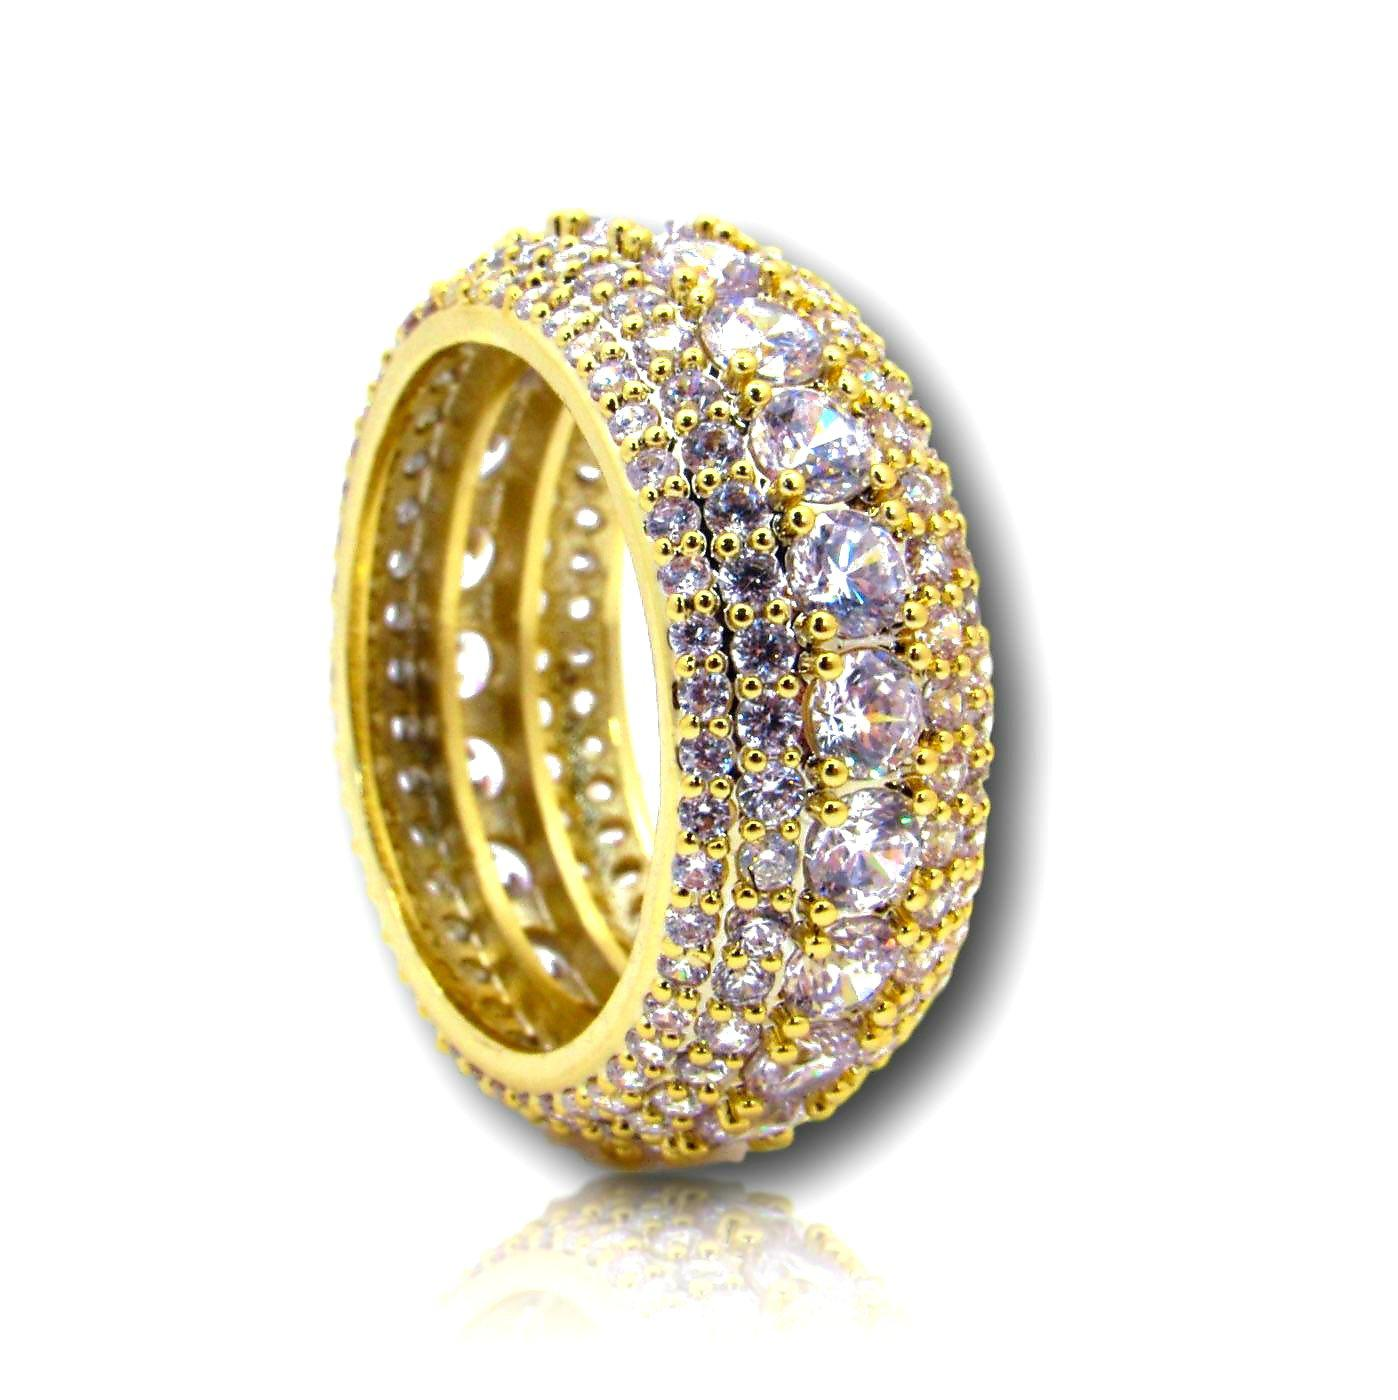 5 Layer Diamond Band Ring in Yellow Gold - IcedGold